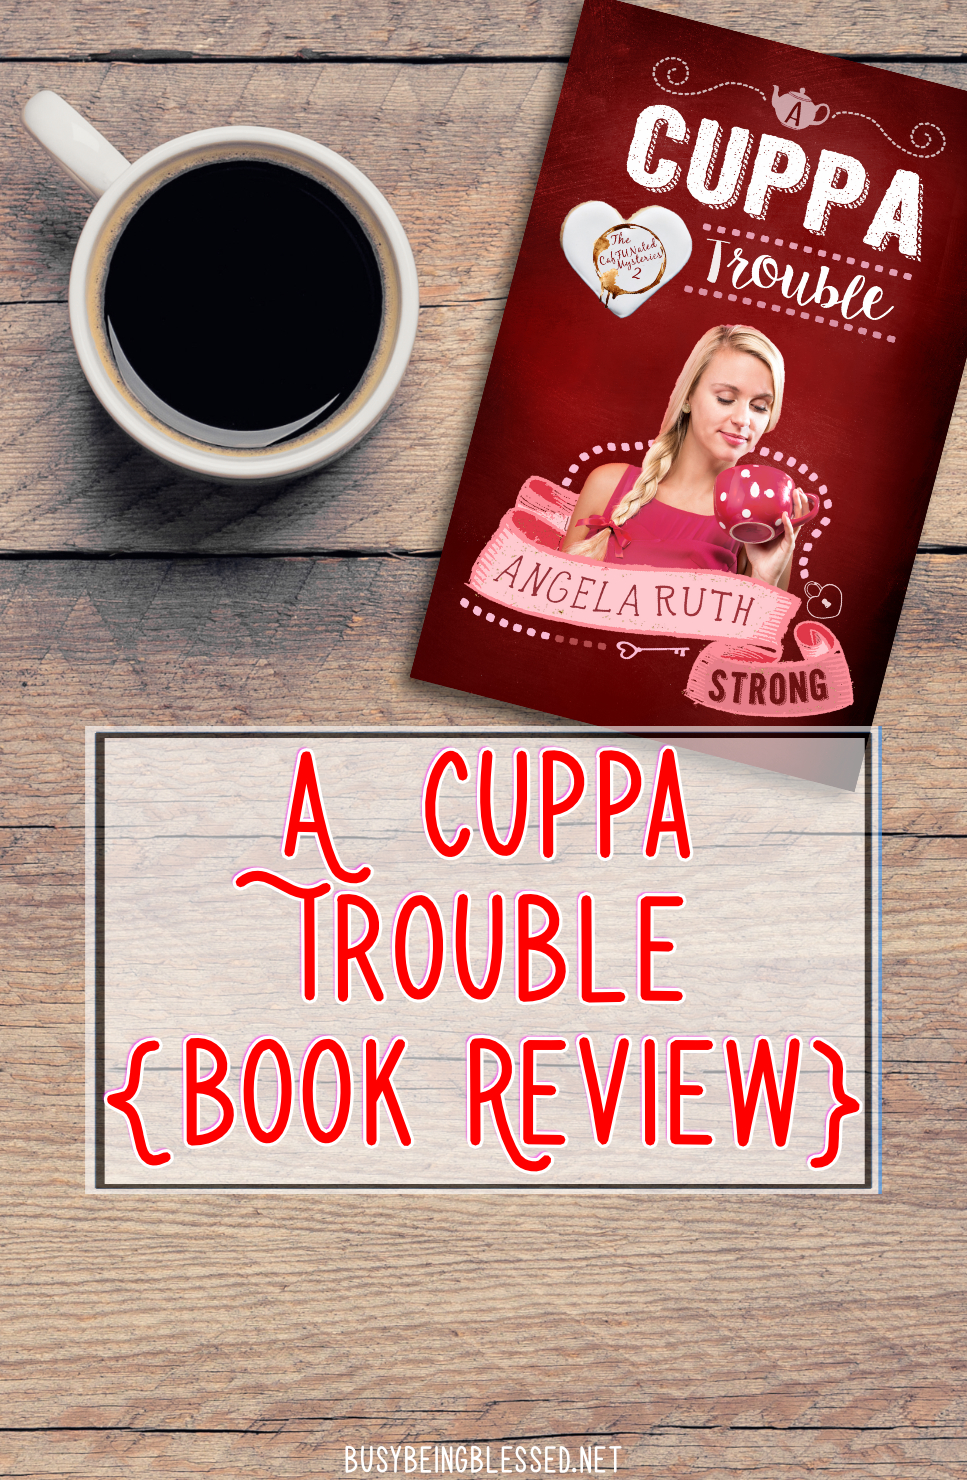 This is another wonderful work of fiction by Angela Ruth Strong. It\'s a comedy/romance/mystery joyride. :)